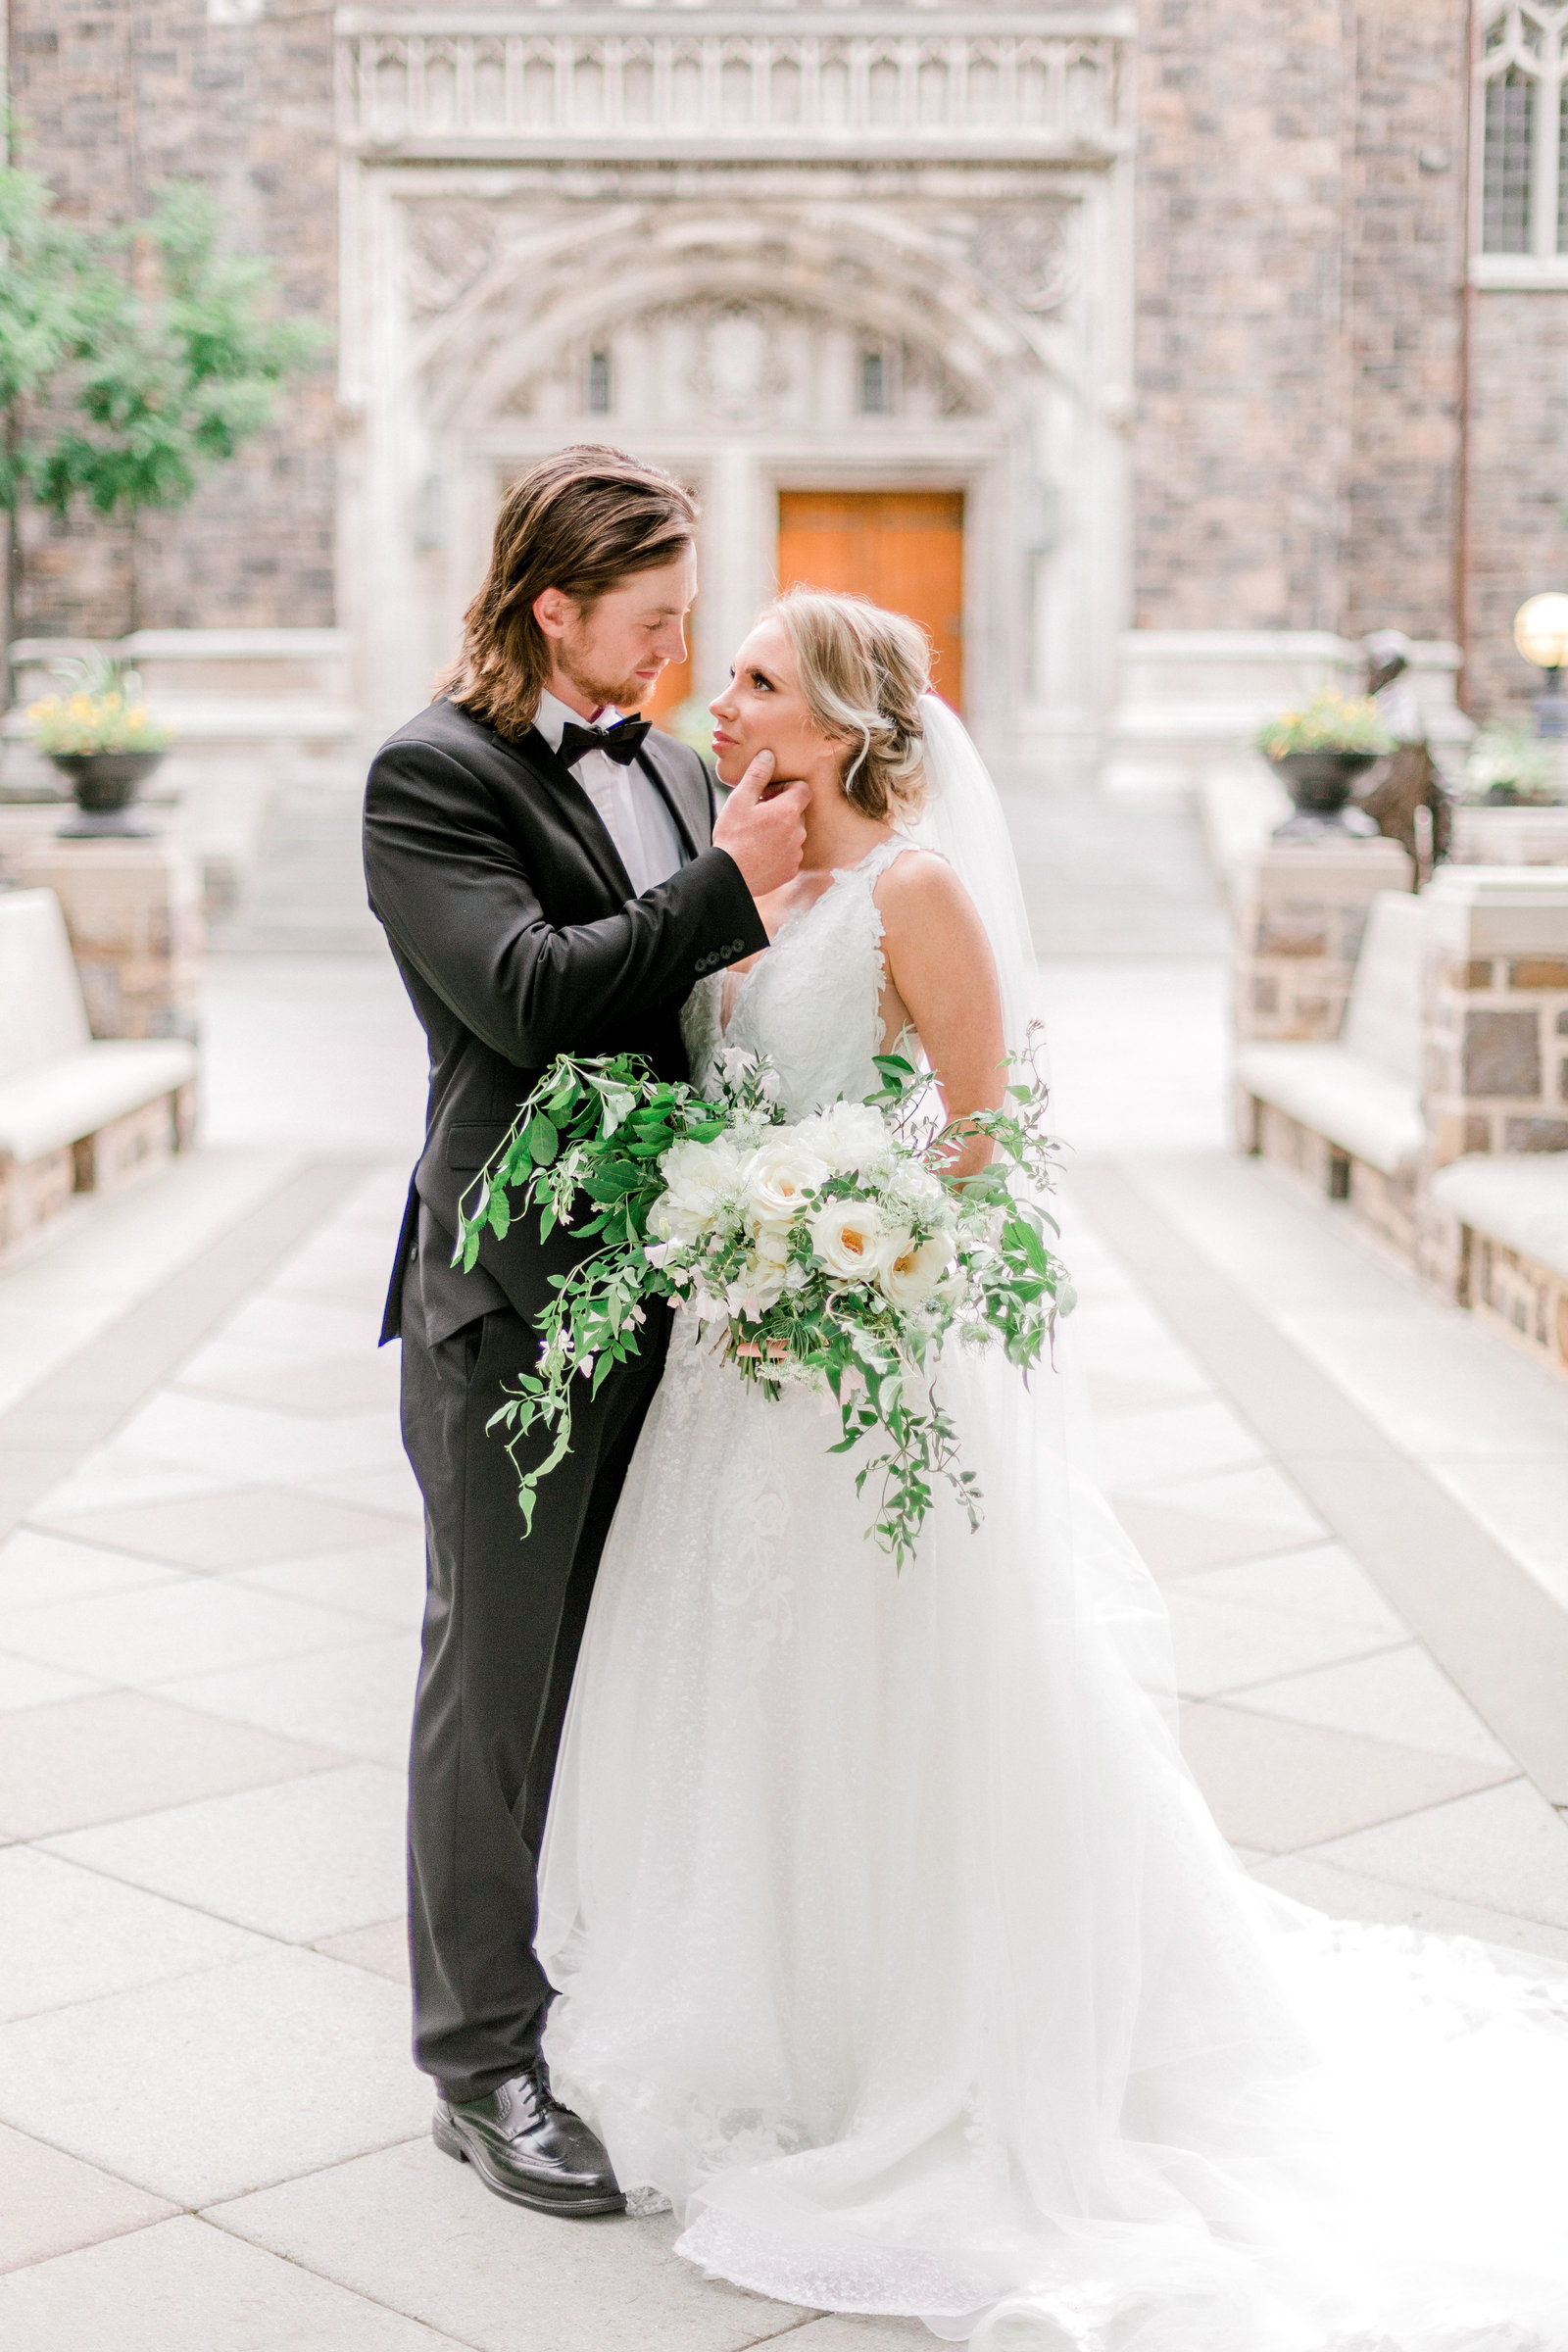 European Dream Inspired Timeless Wedding Editorial Shoot At Lehigh University Campus In Bethlehem Pennsylvania by Lehigh valley based wedding and lifestyle photographer  (146 of 224)